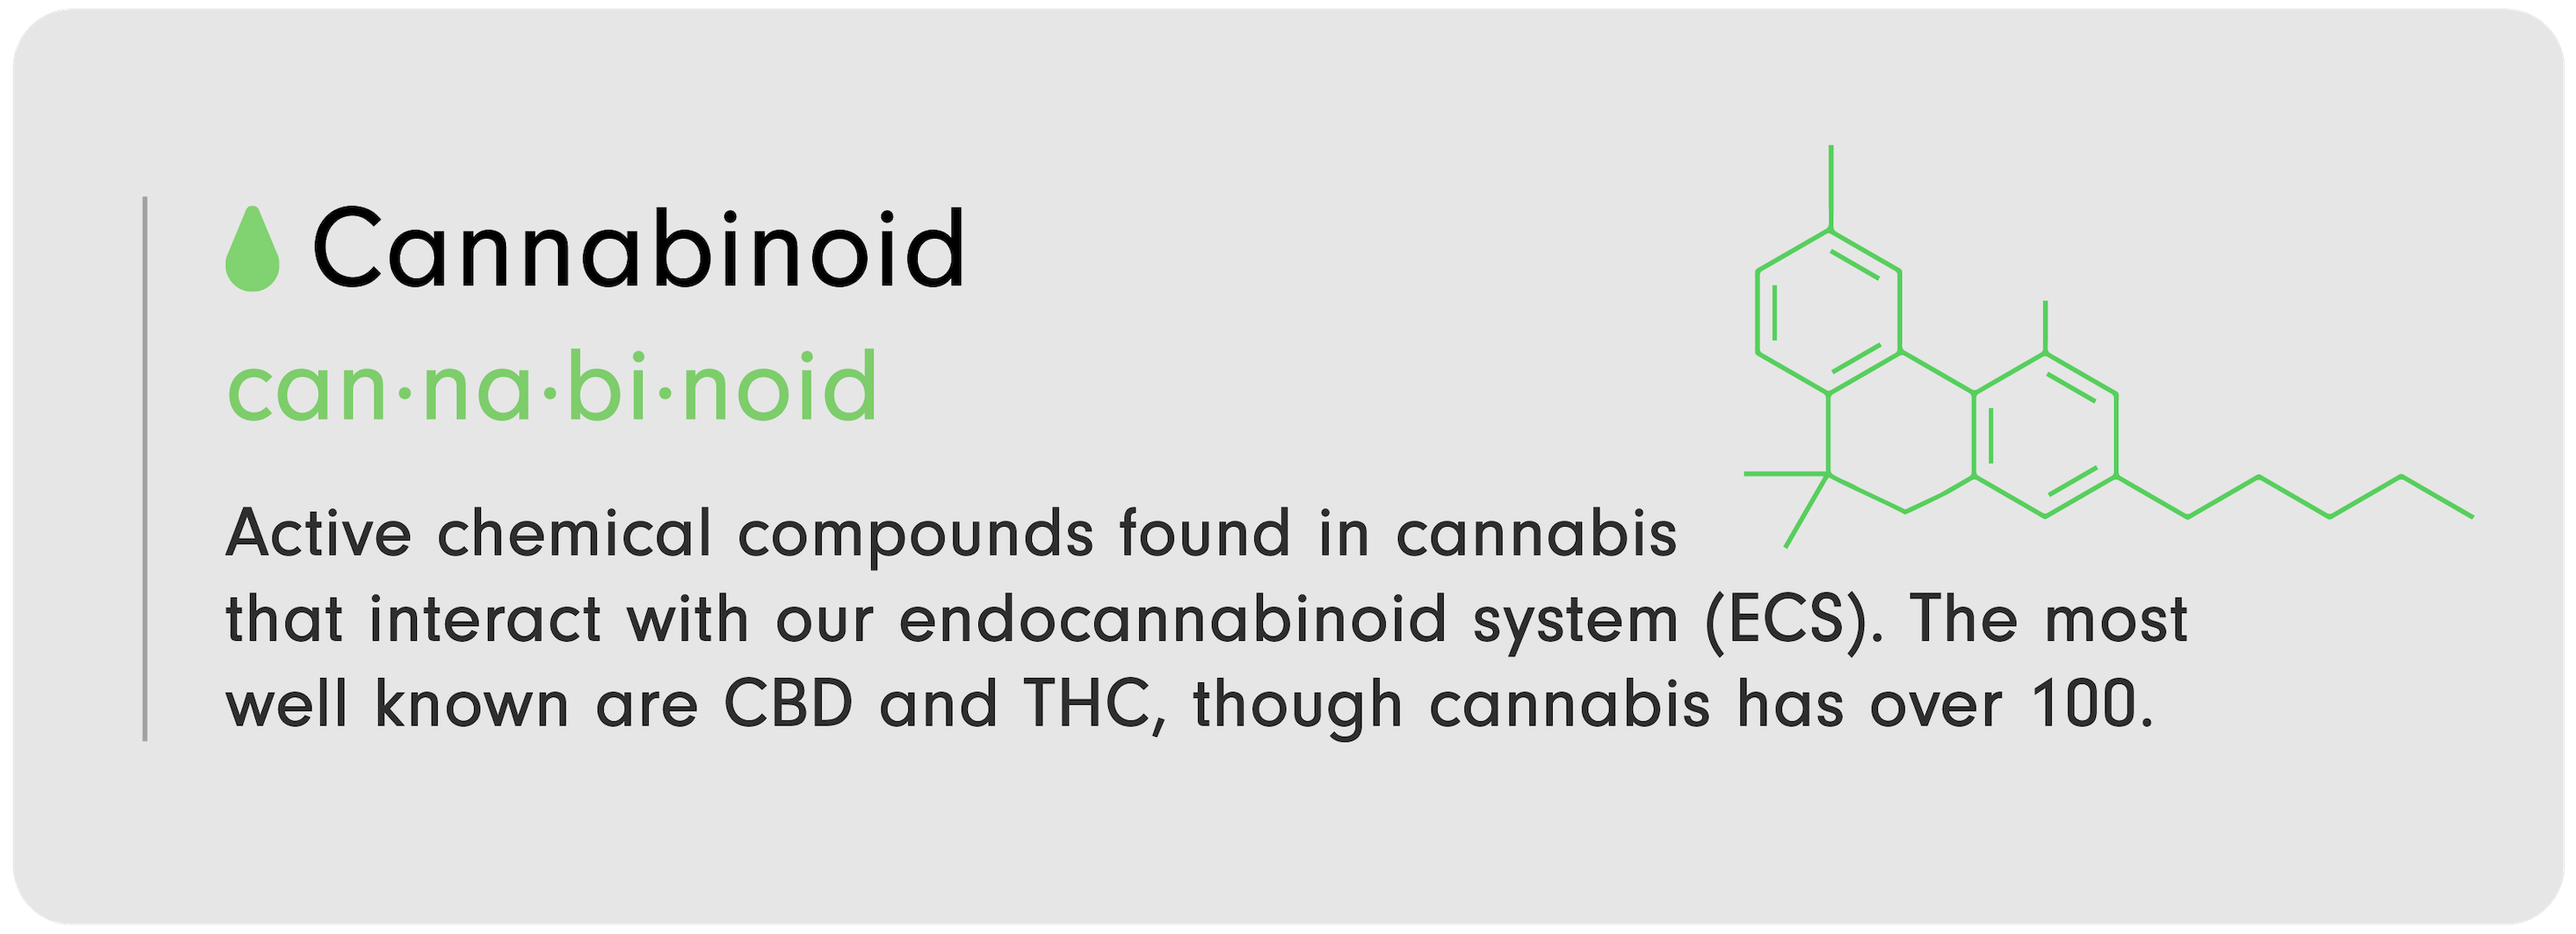 """C-D 101 infographic by LEVO that reads, """"Cannabinoid: Active chemical compounds found in c----bis that interact with our endocannabinoid system (ECS). The most well known are C-D and T-C, though c----bis has over 100."""""""